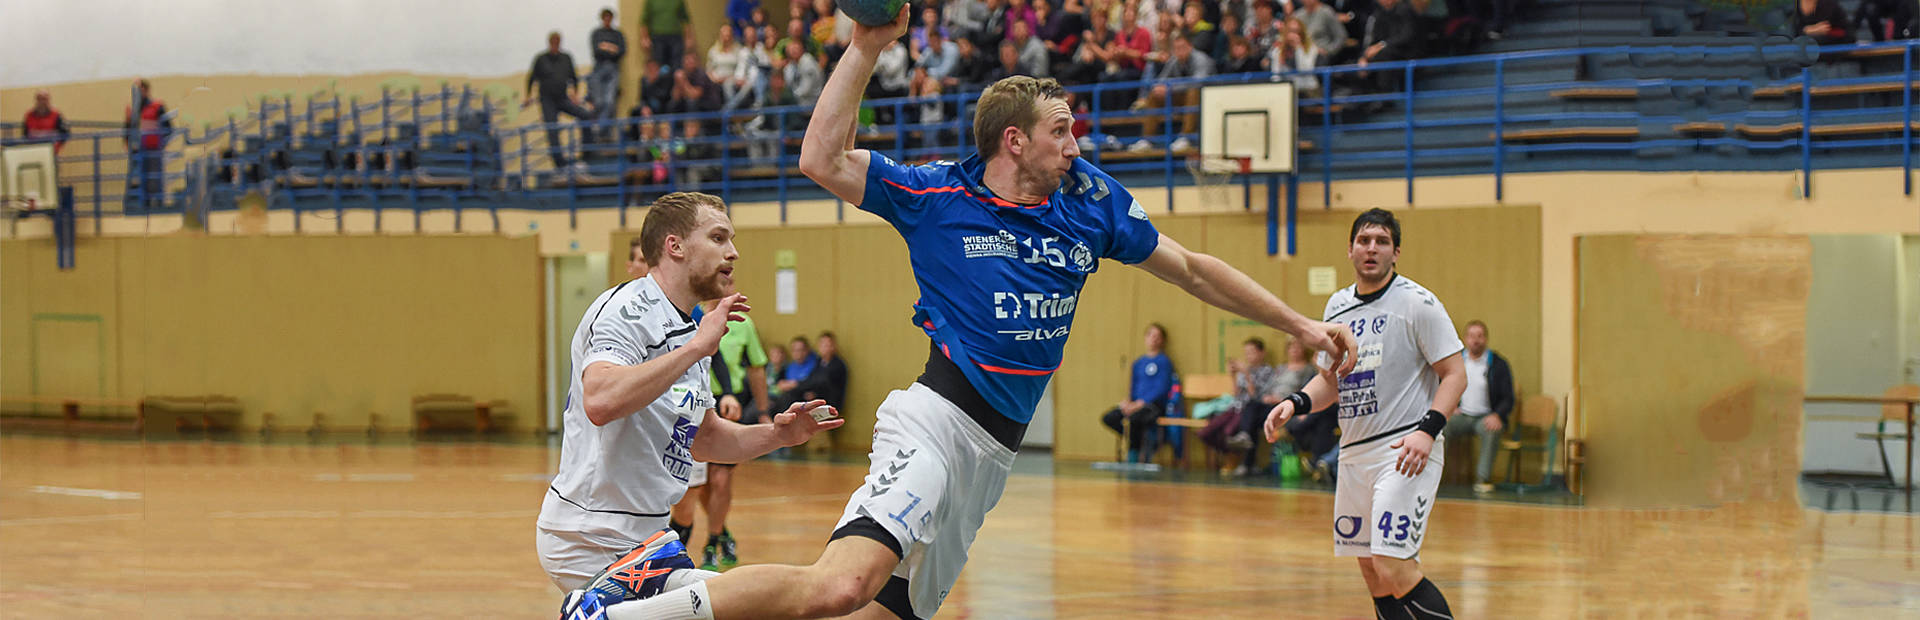 For a number of years, Trimo has been the main sponsor of the Trimo Trebnje Handball Club.